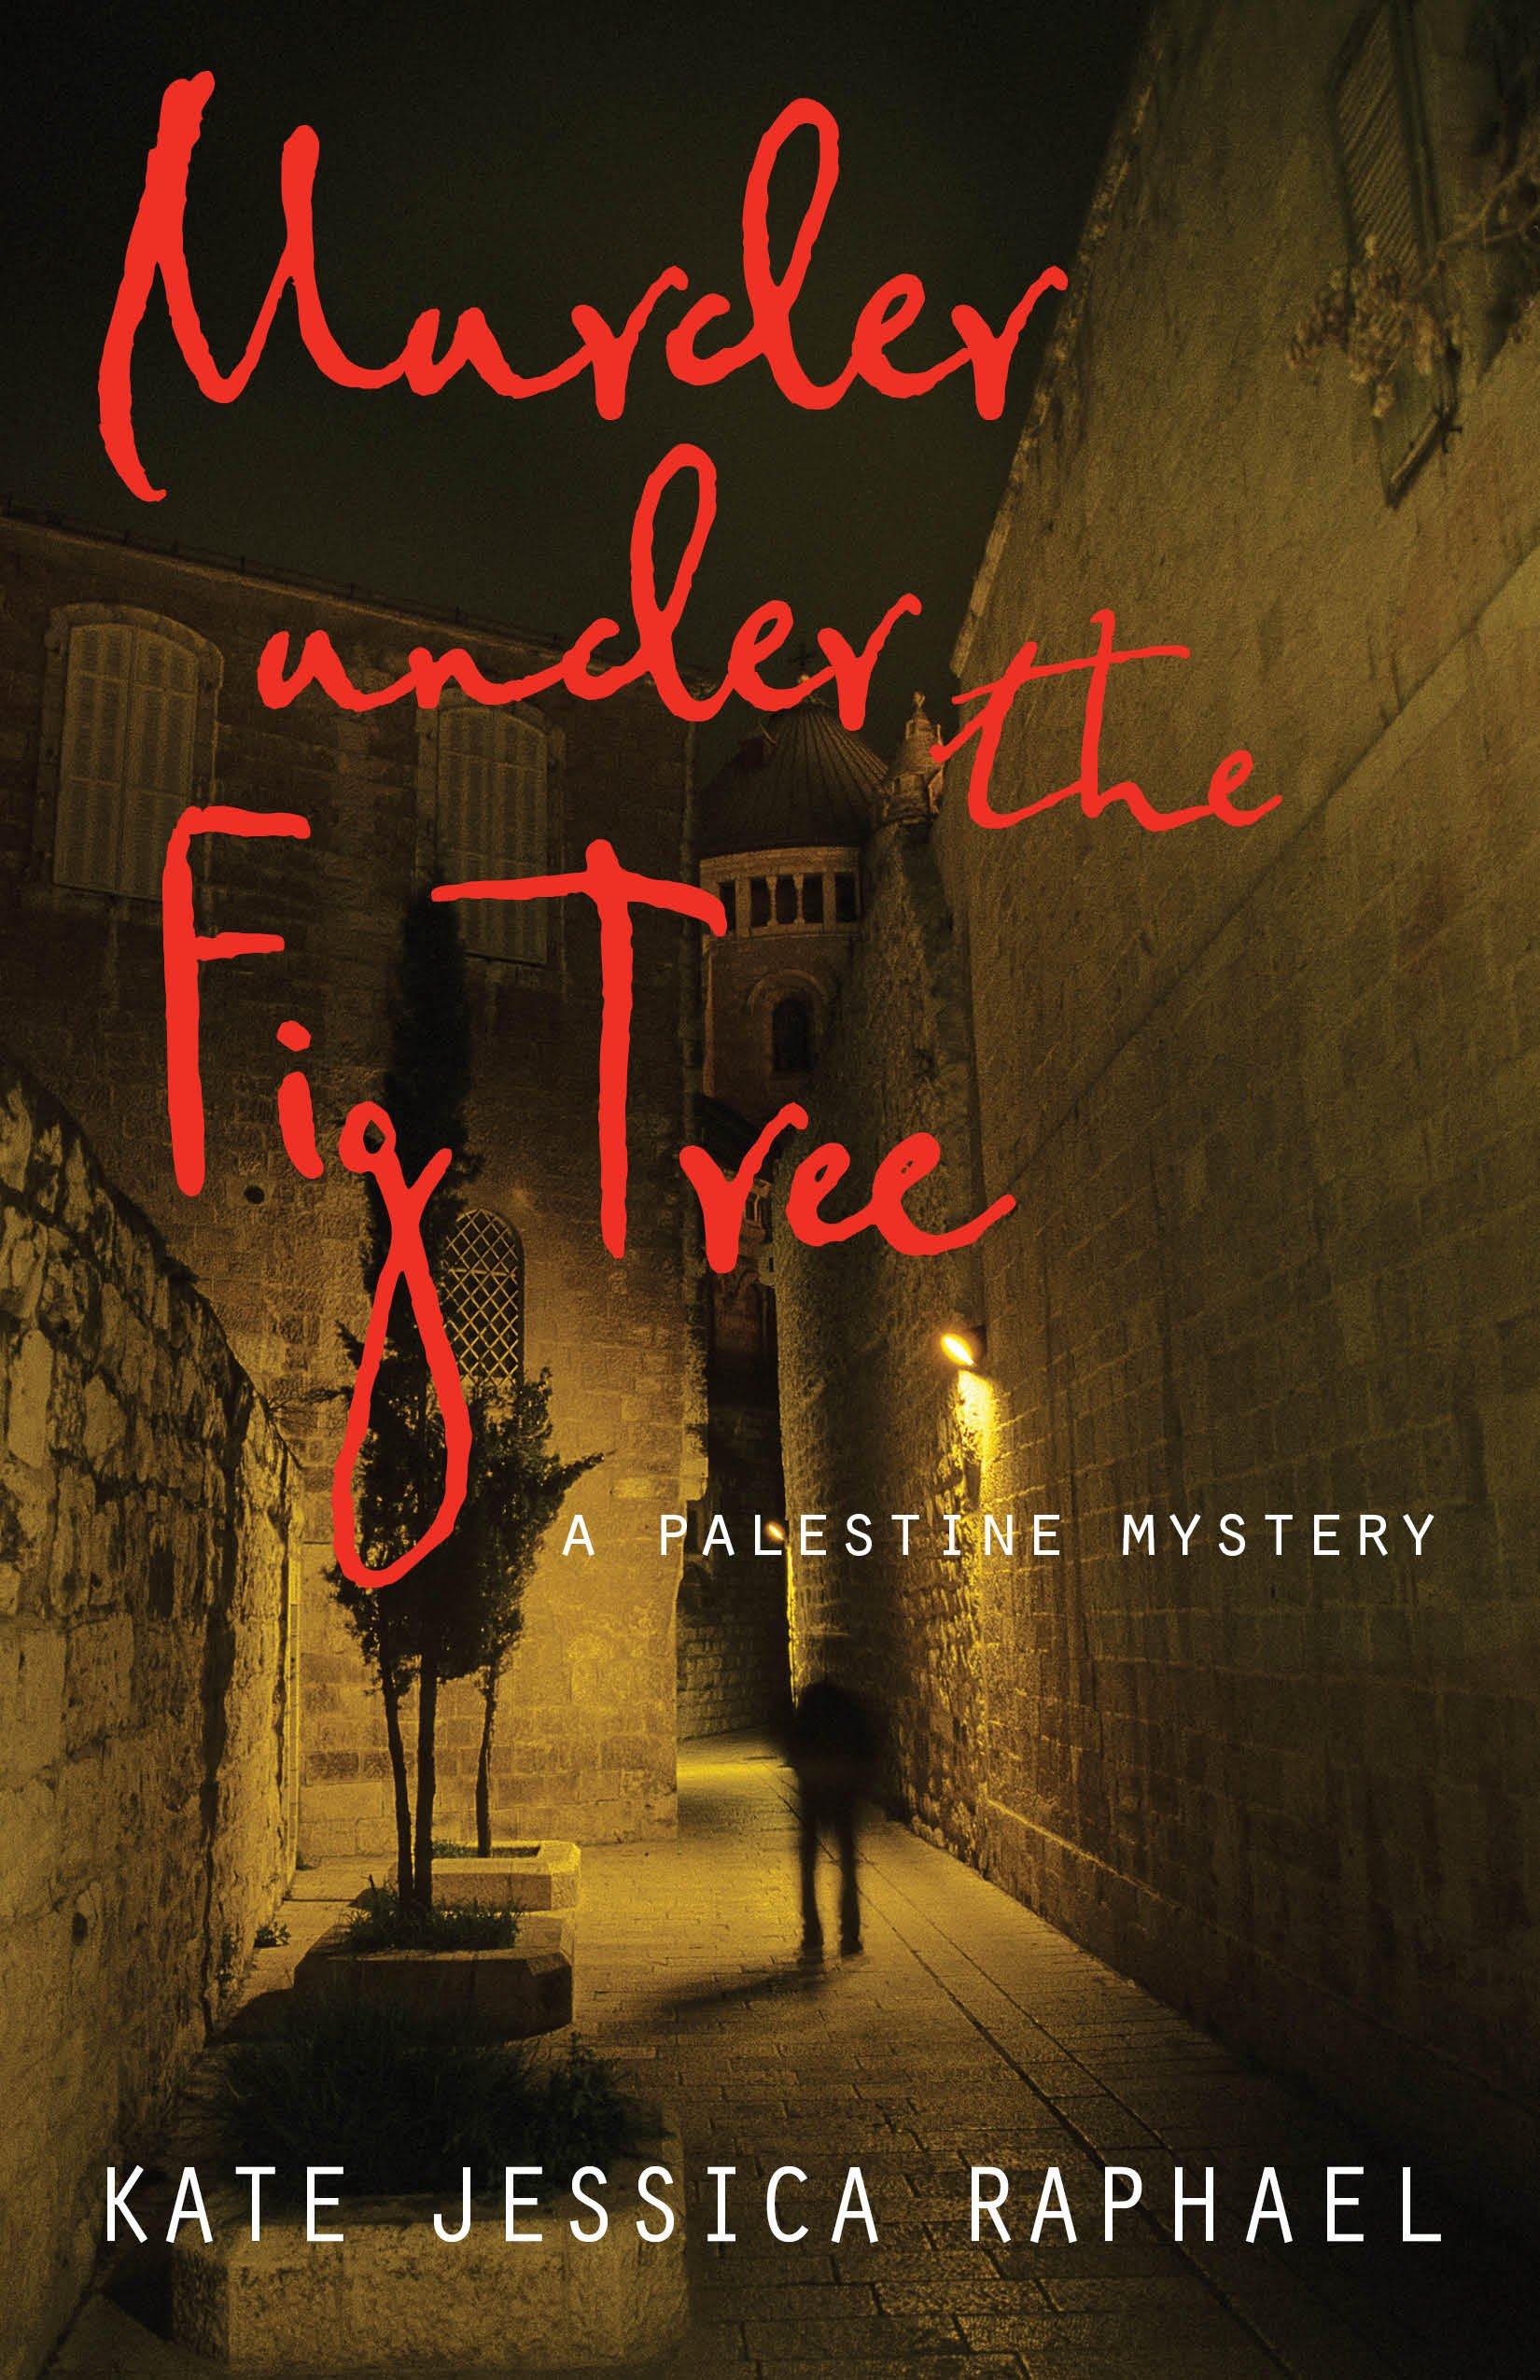 Murder Under the Fig Tree: A Palestine Mystery: Kate Jessica Raphael